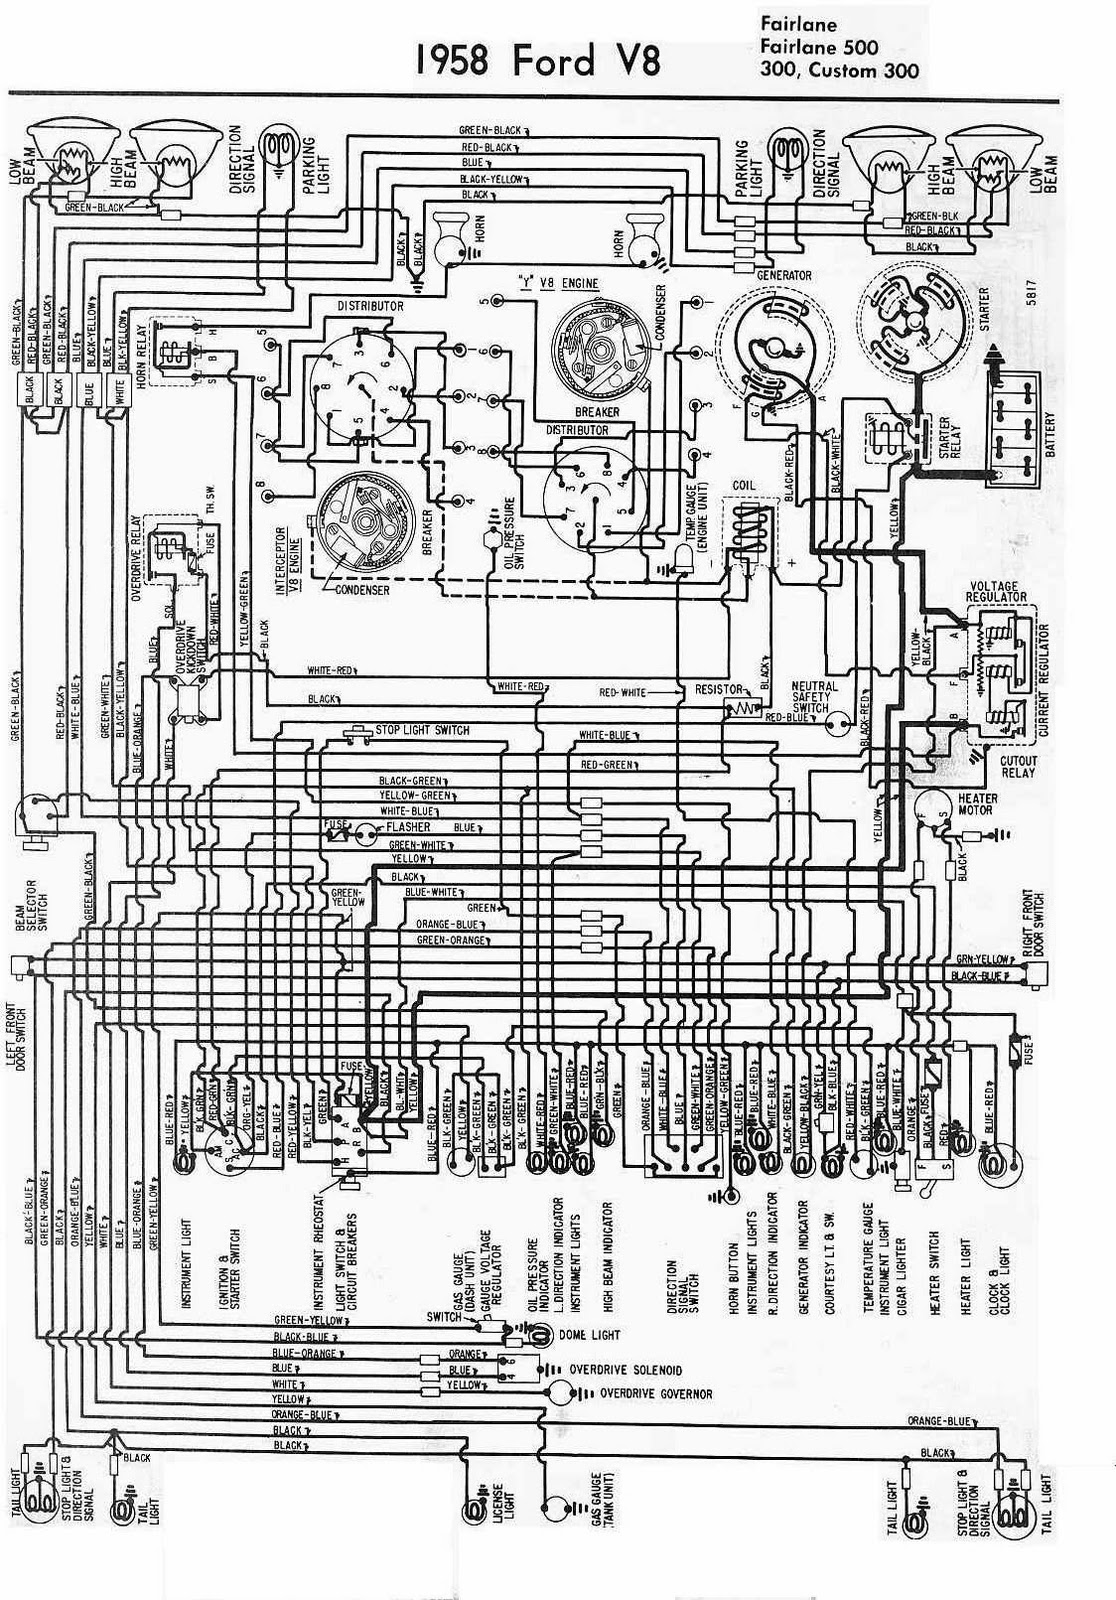 1958 Corvette Wiring Diagram Temp Fuse Box 1964 Electrical For Ford V8 All About Diagrams Rh Diagramonwiring Blogspot Com 1966